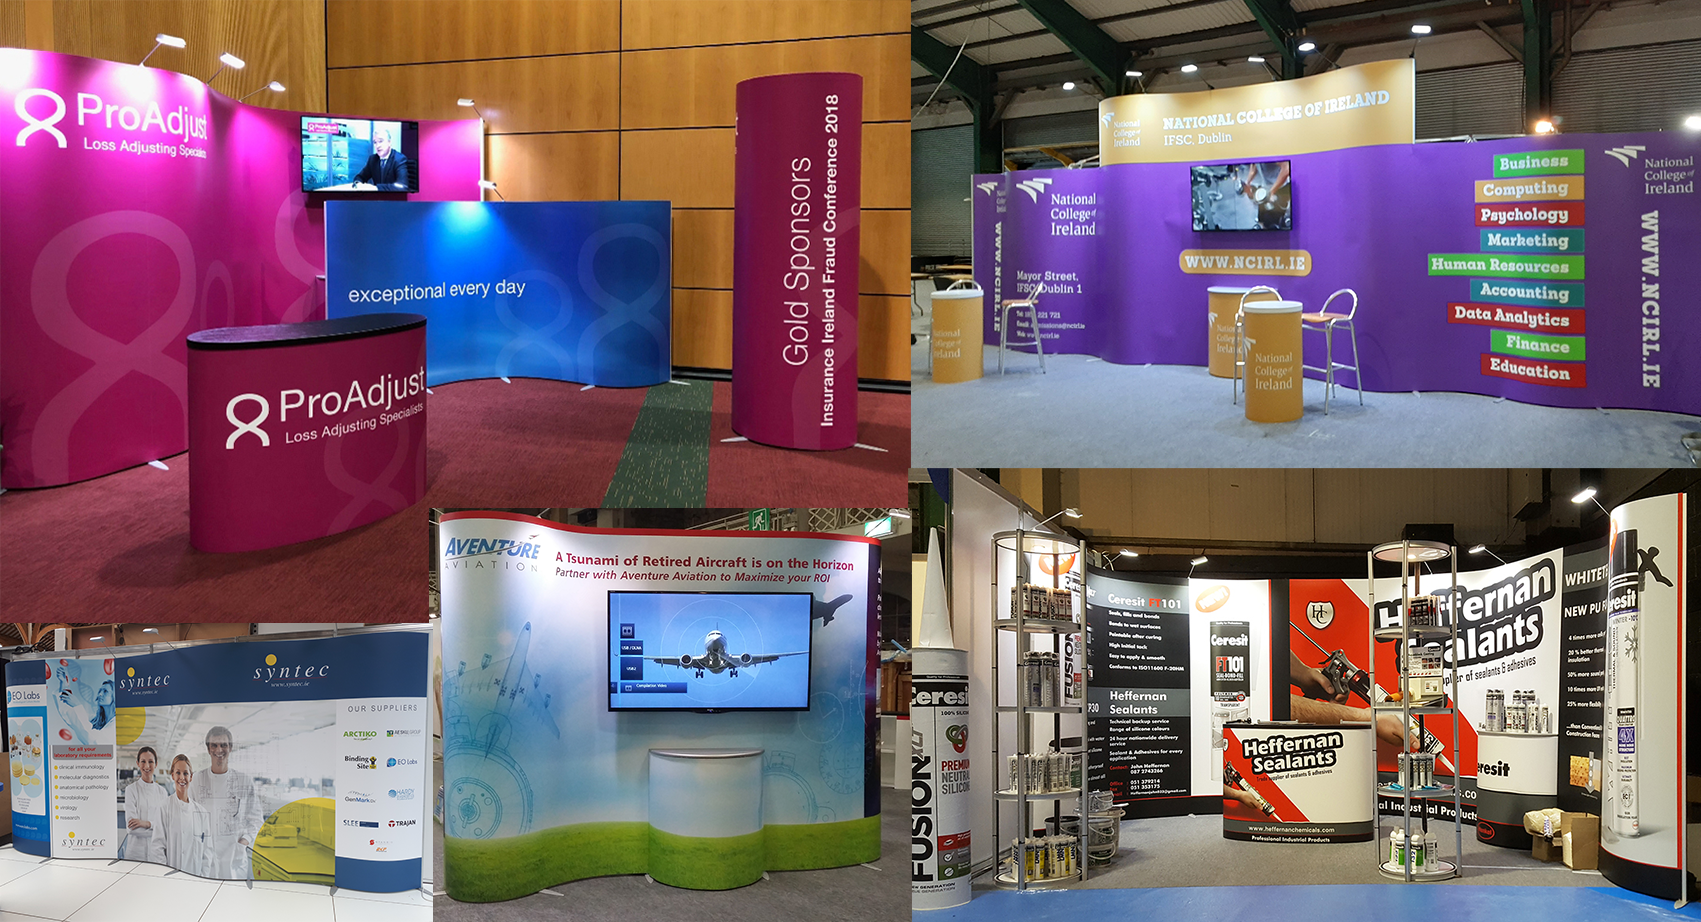 ISOframe Wave Expo & Tradeshow Rental packages